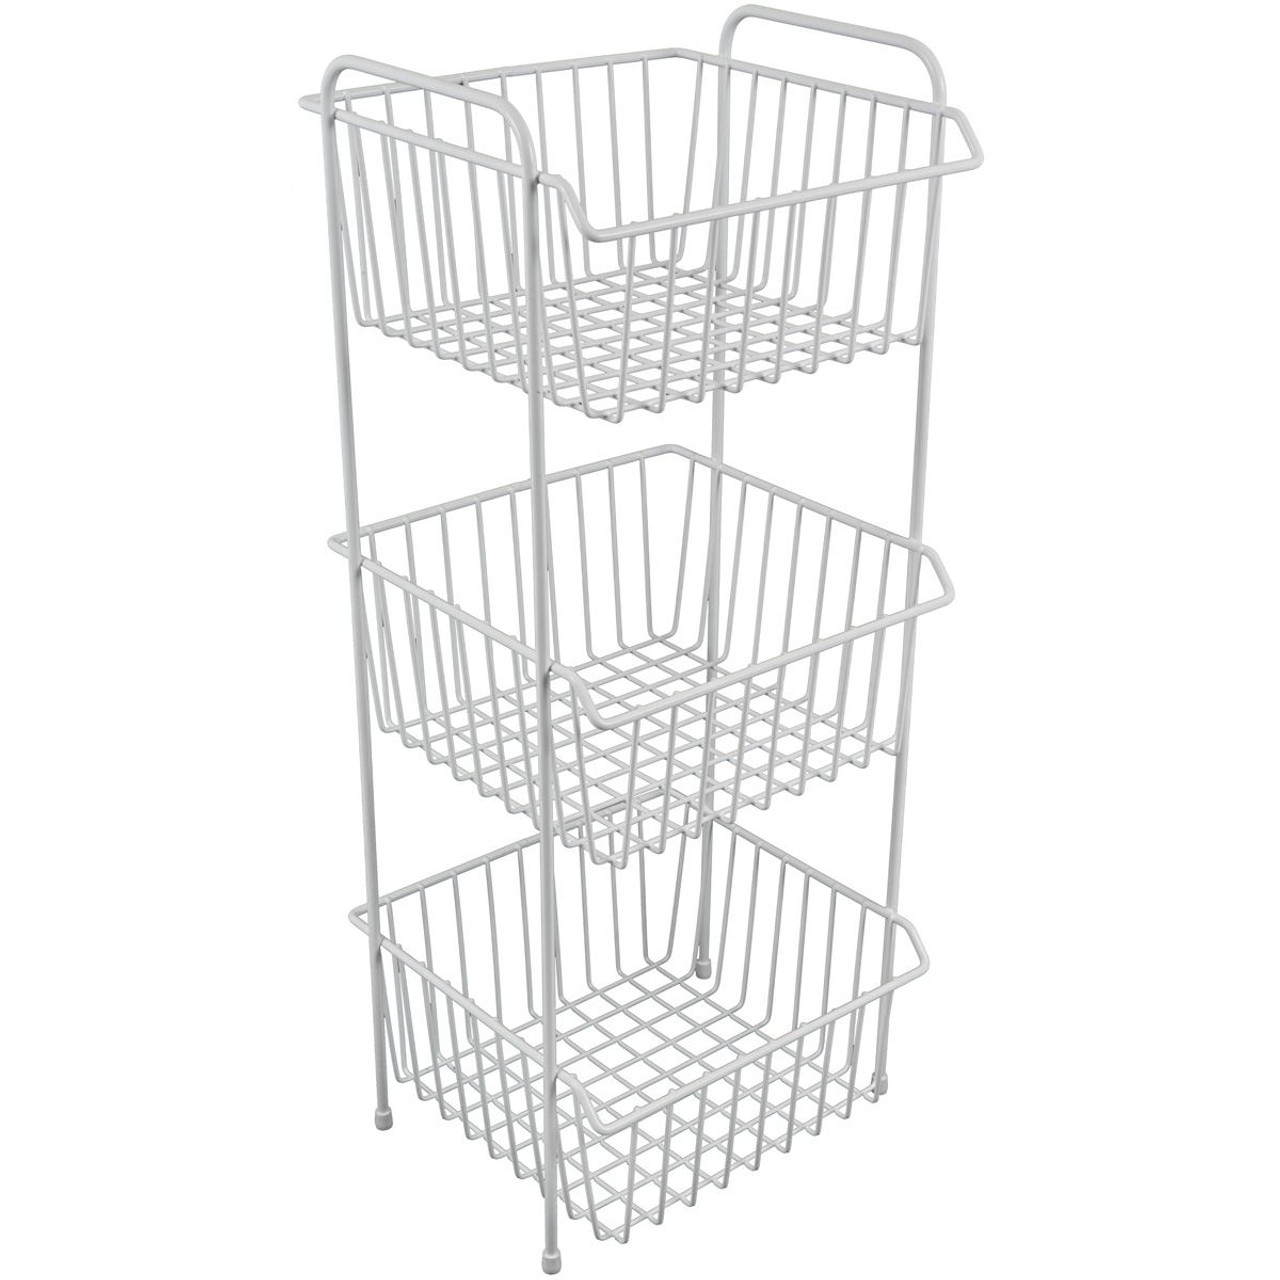 Delfinware Three Tiered Vegetable Rack in White